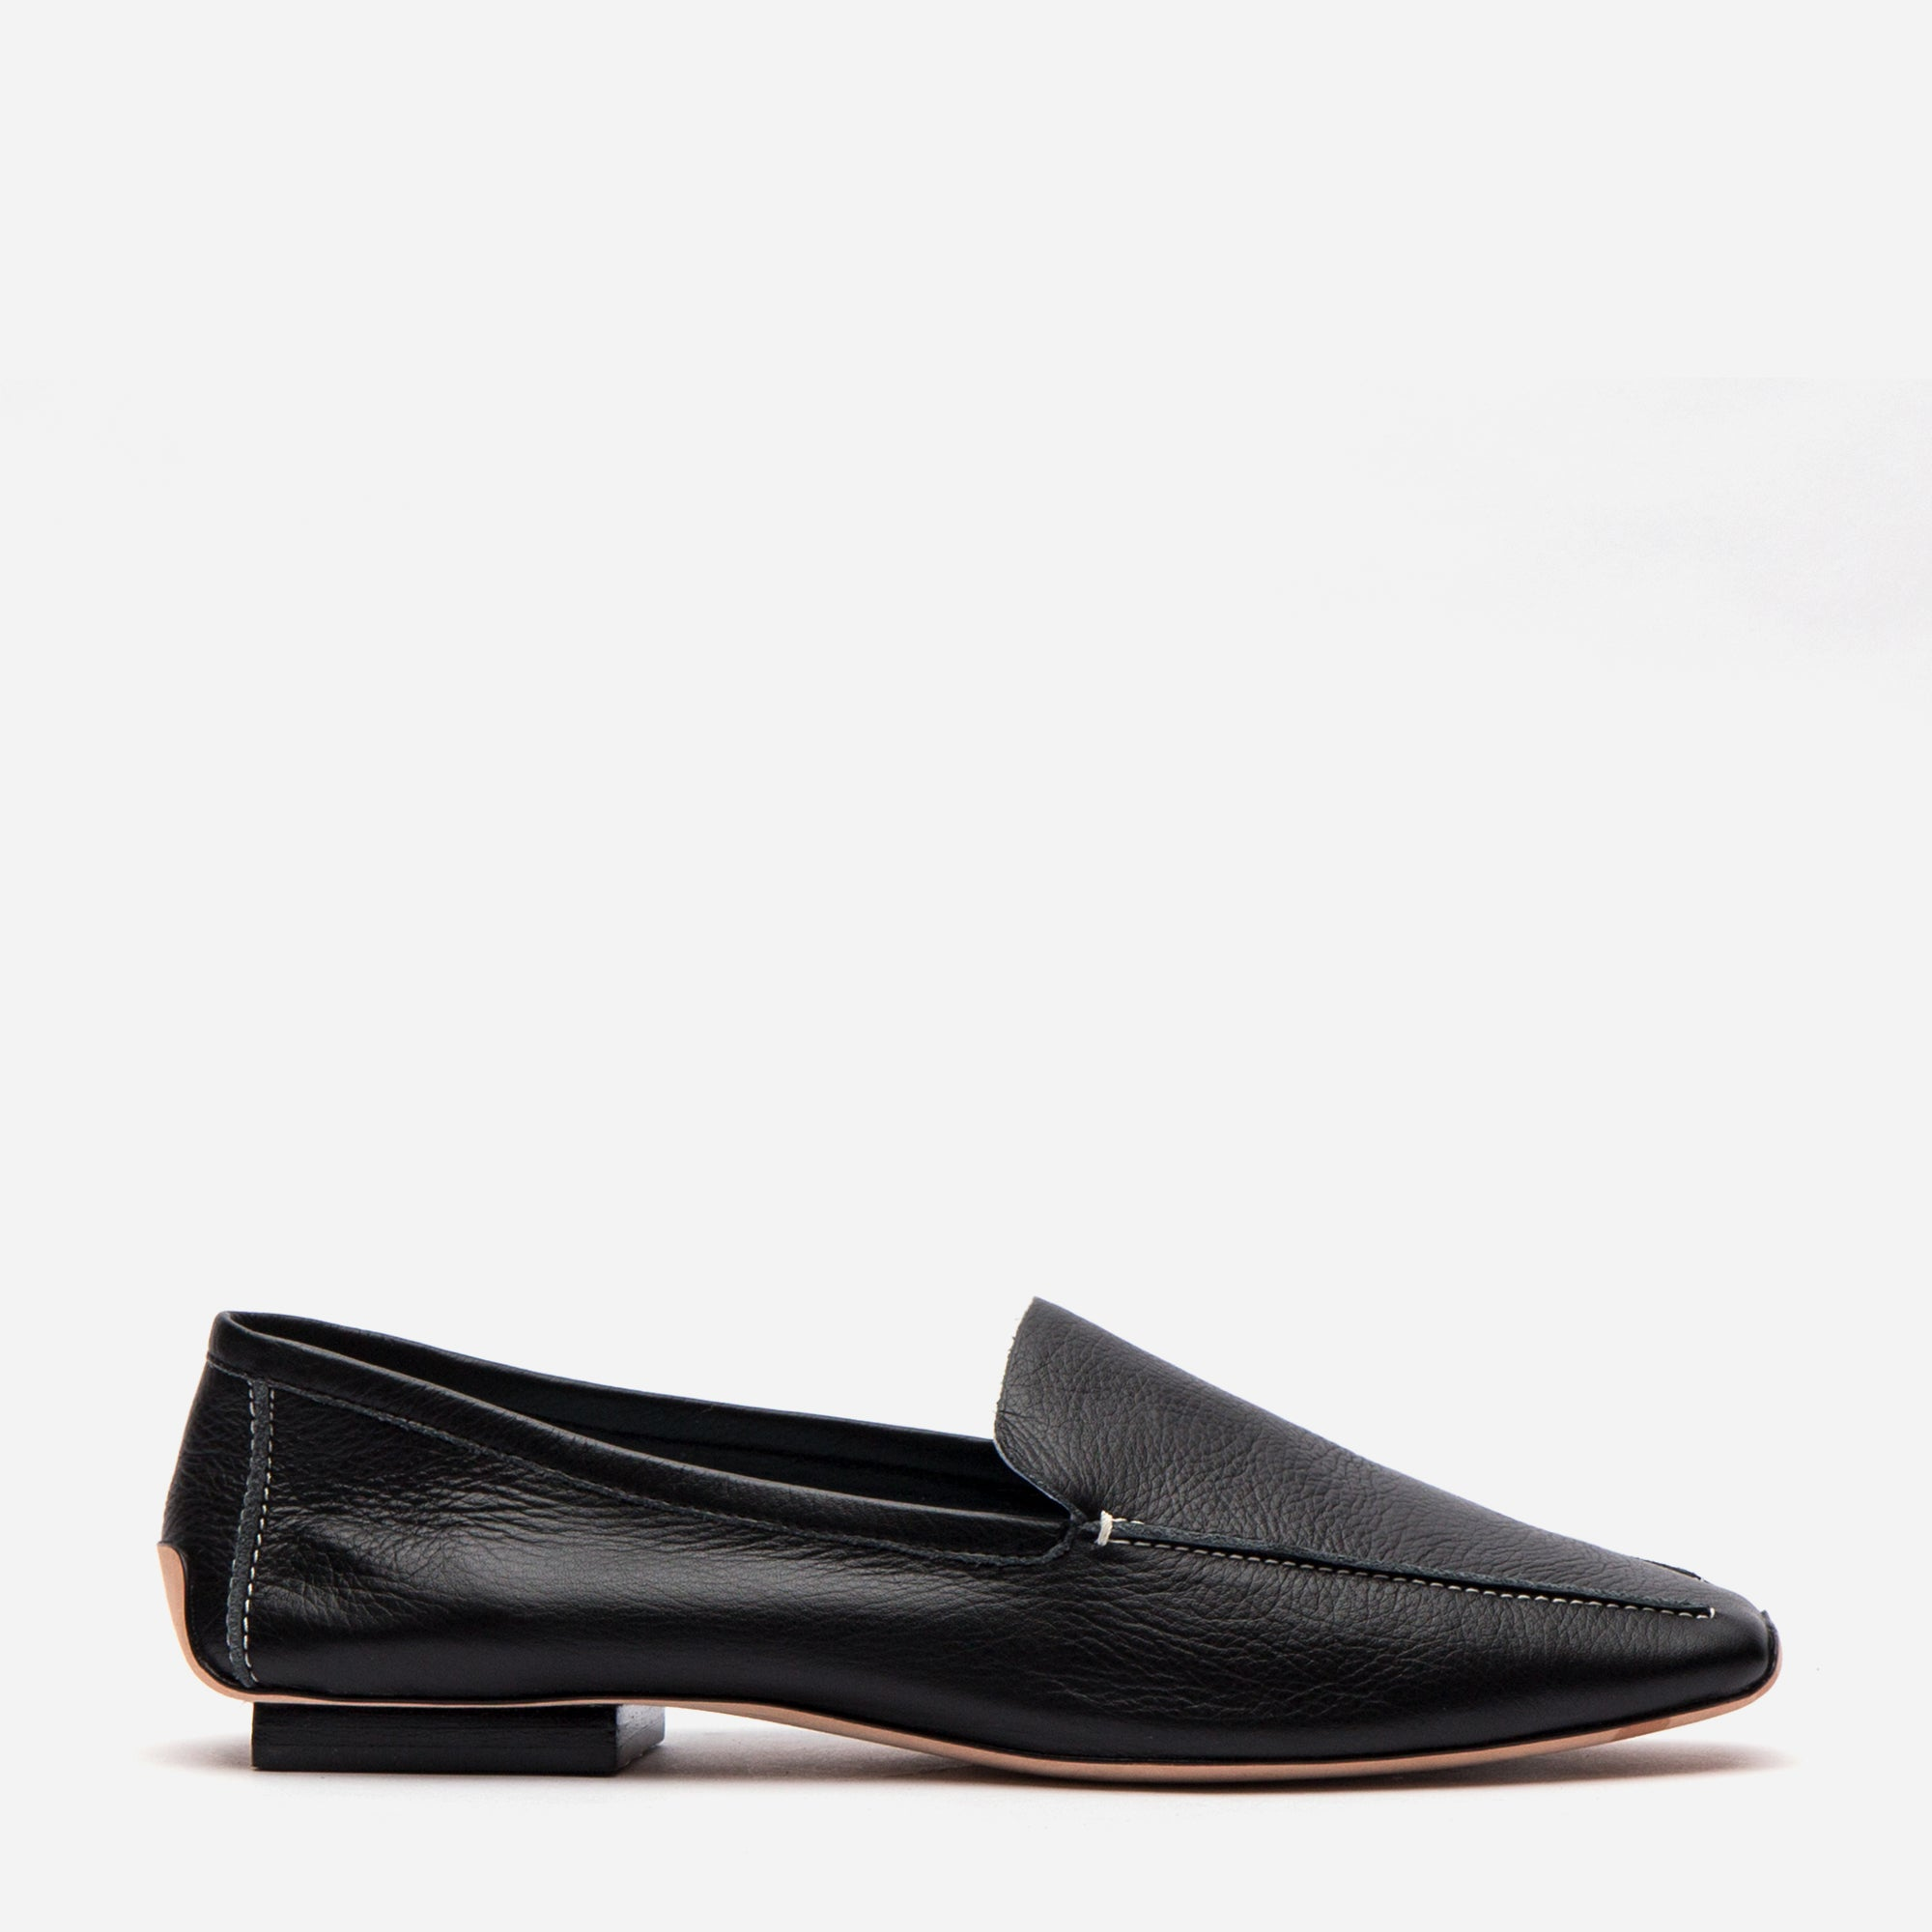 Elyce Loafer Black Leather - Frances Valentine